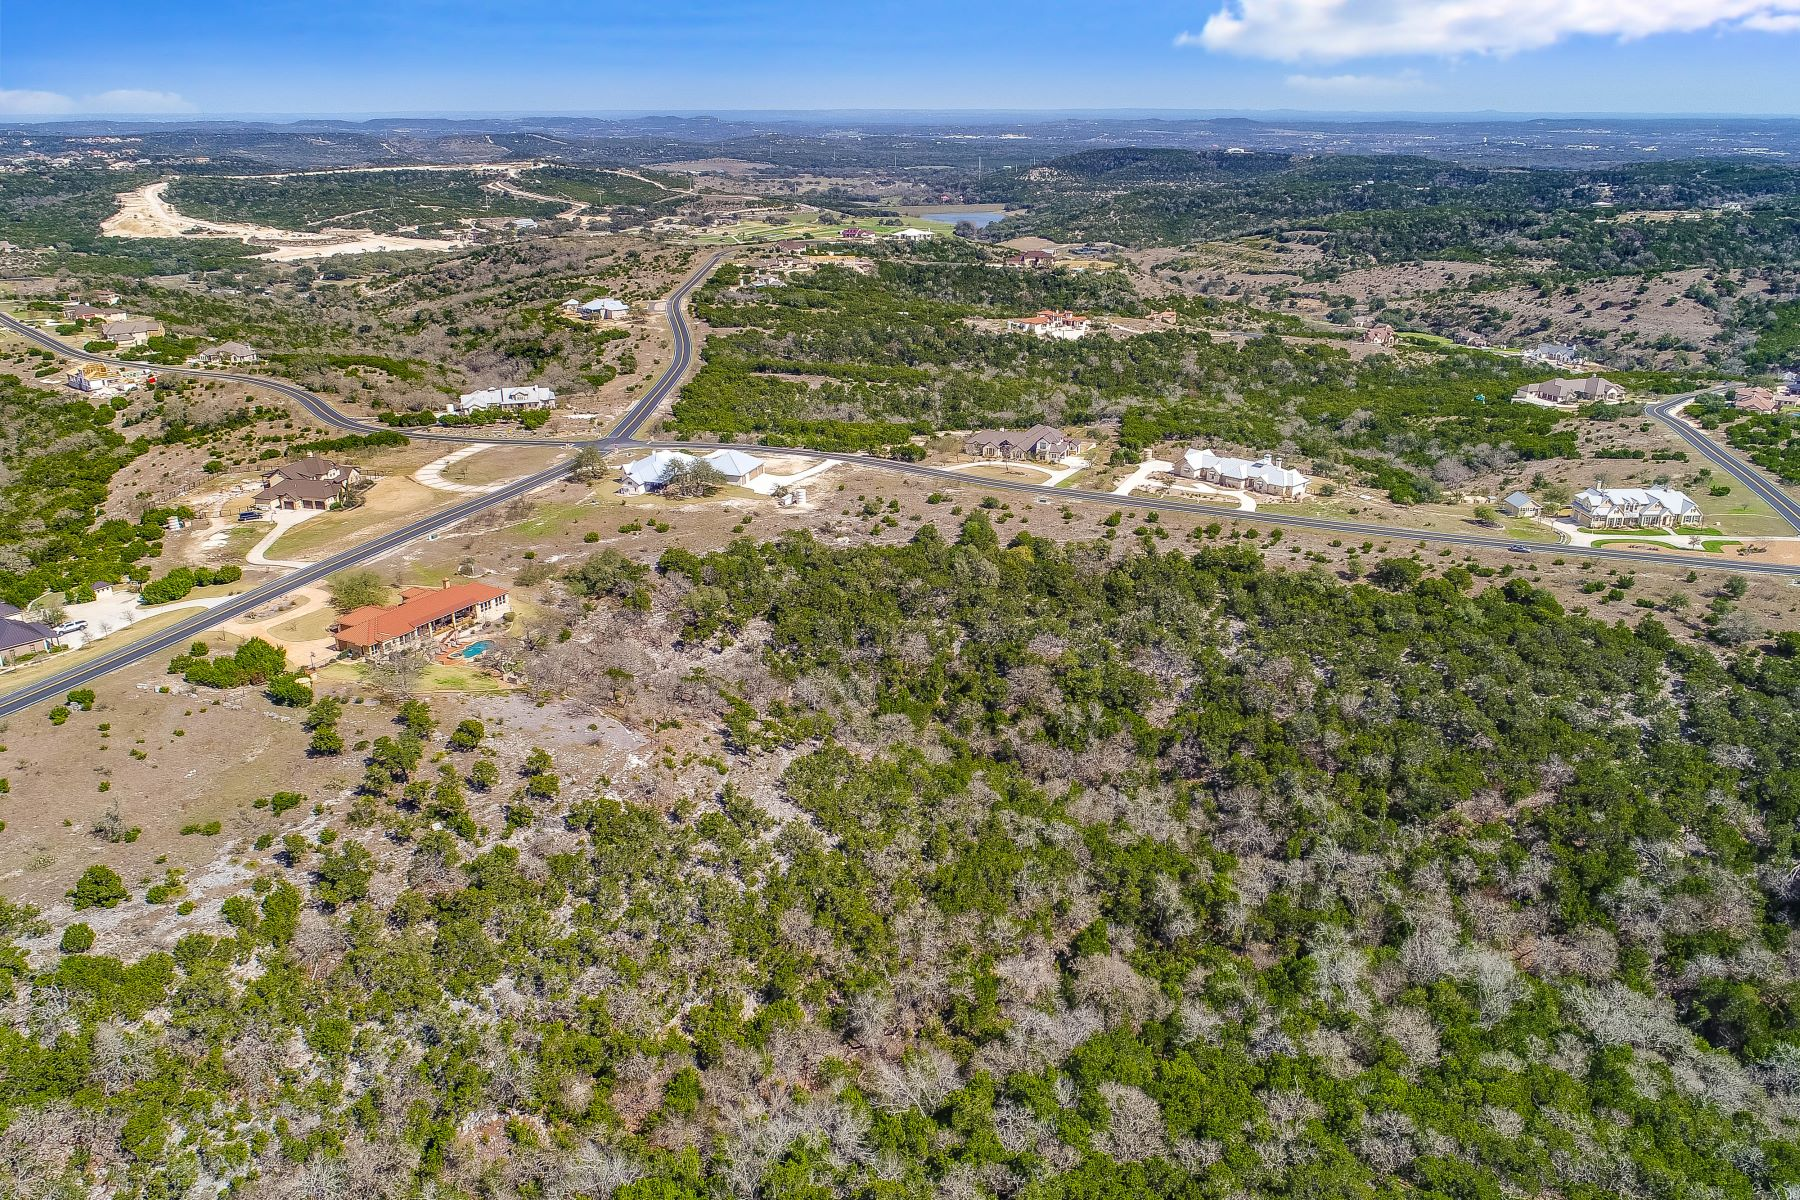 Land for Sale at Panoramic Views on Hill Country Acreage Lot 47 Marquise Boerne, Texas 78006 United States